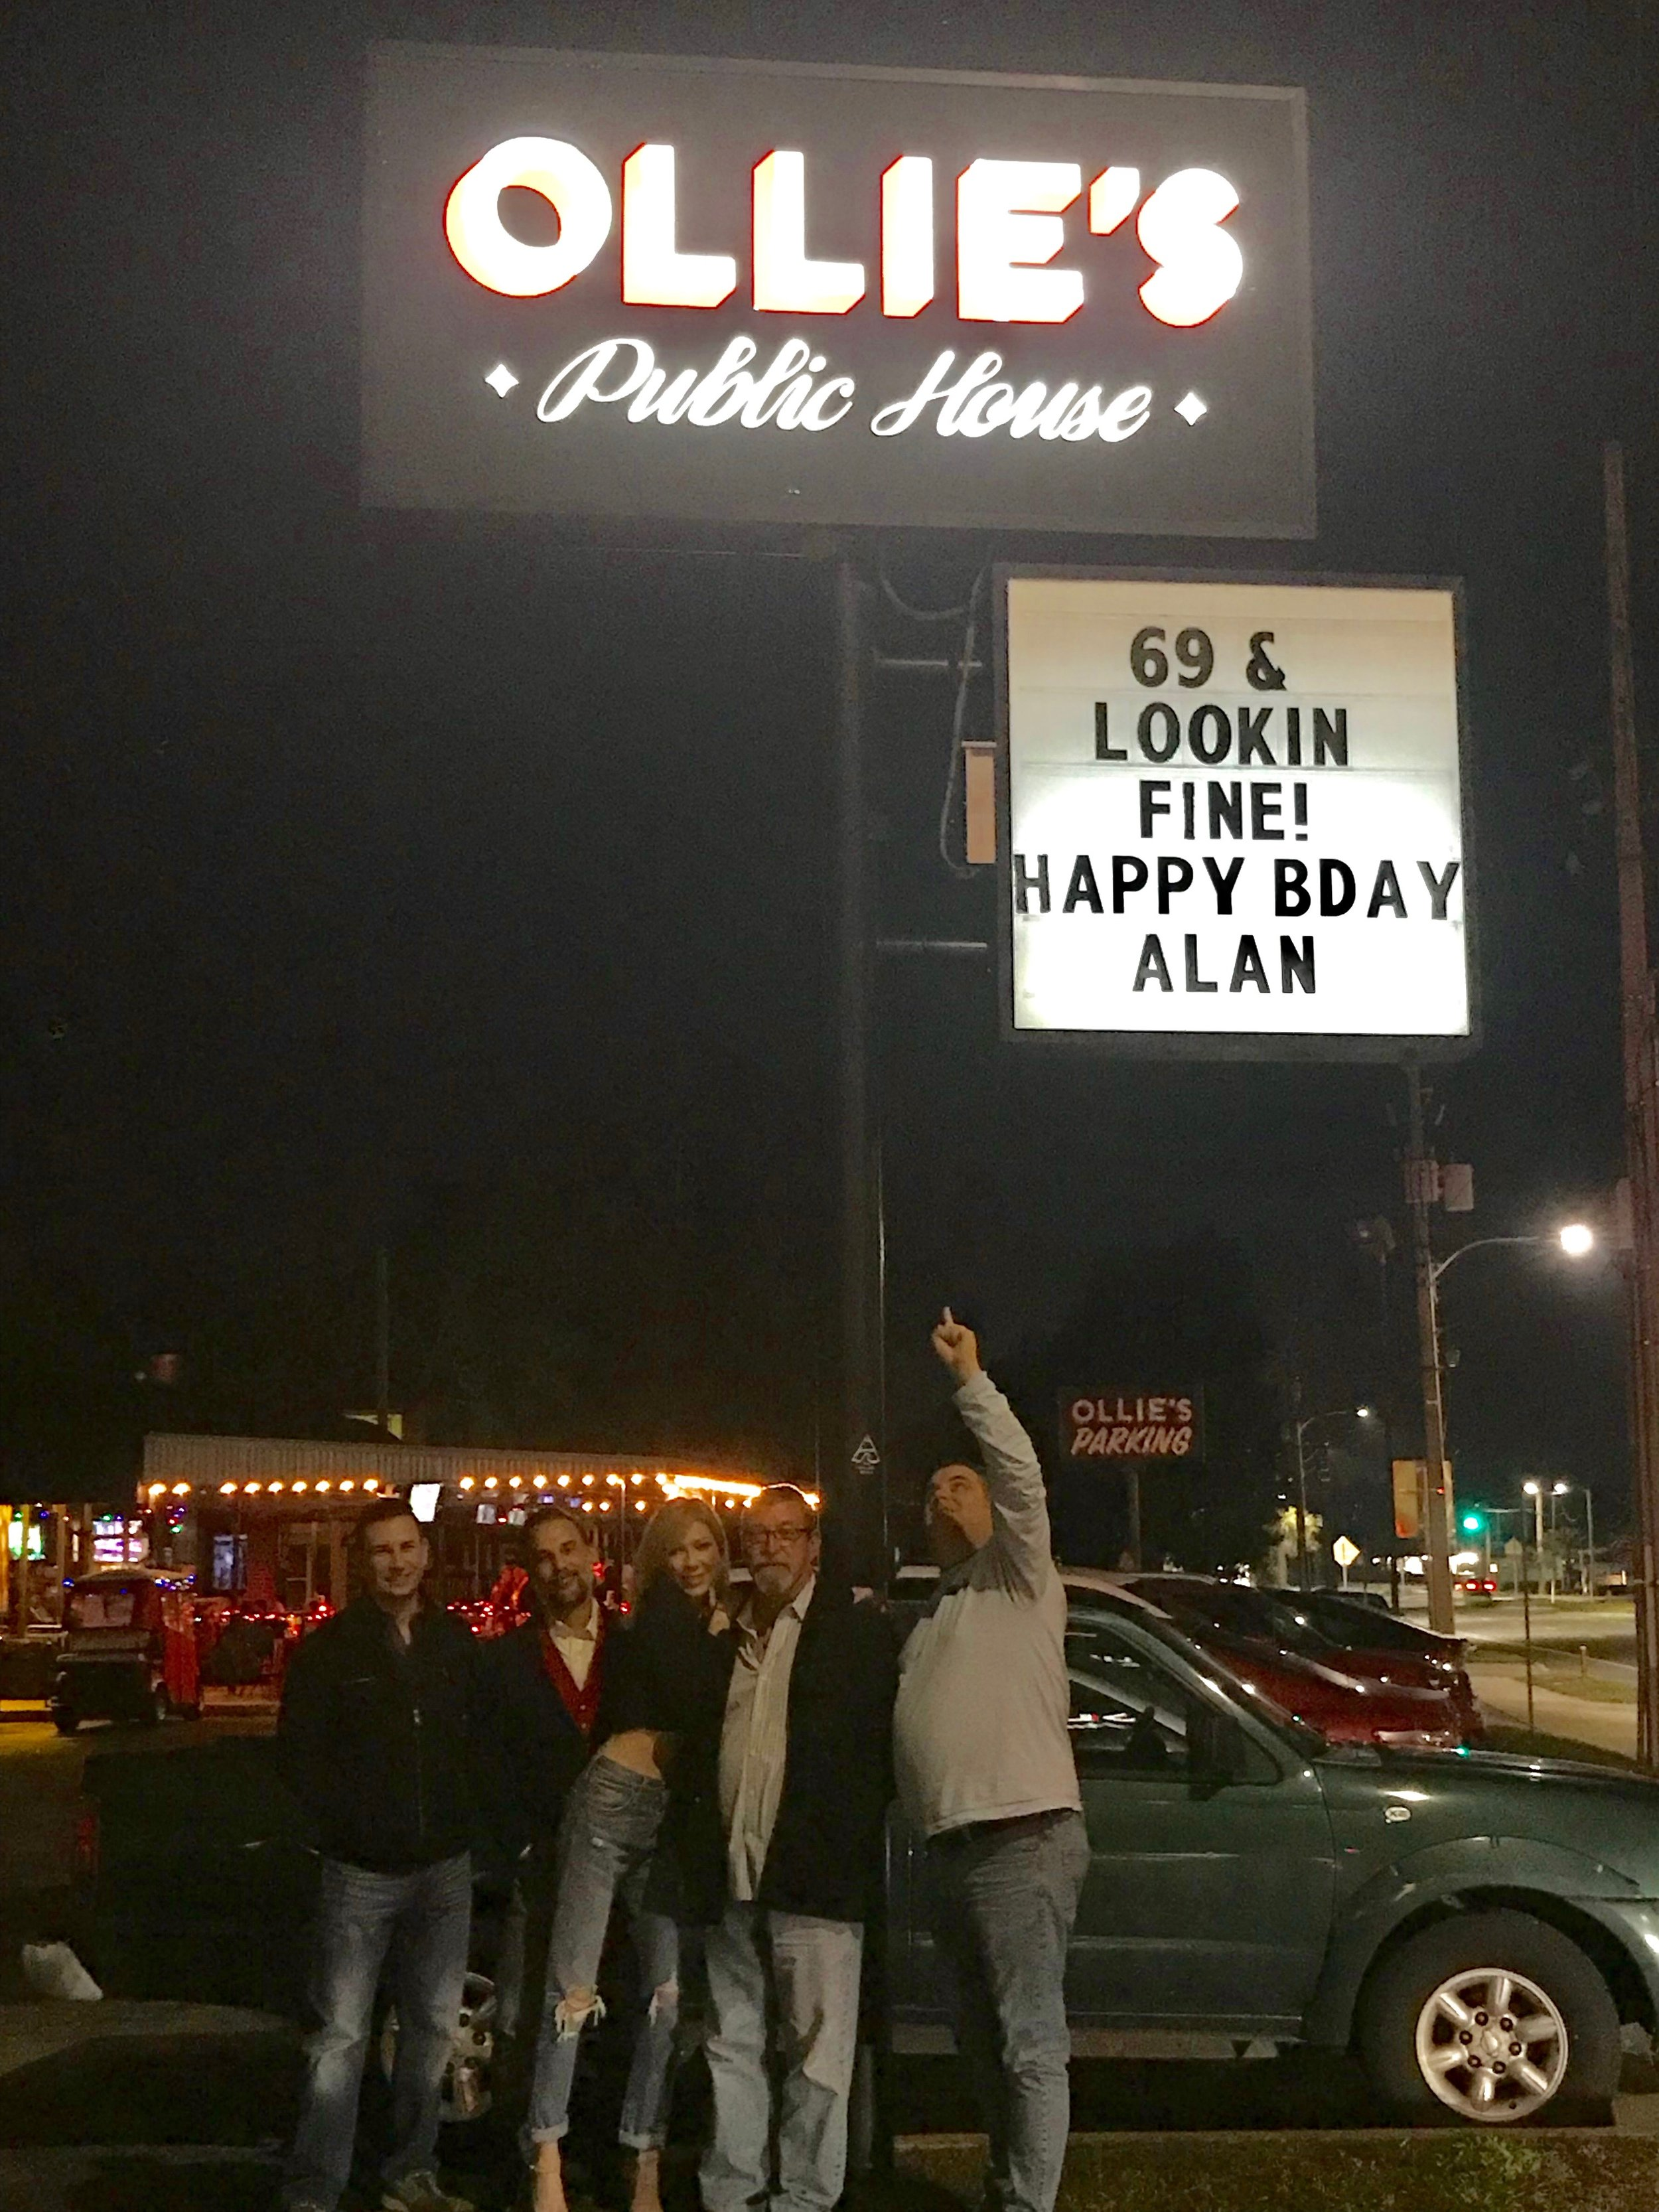 They gave me a great 69th birthday on Dec 24th 2018-yes and even Matt came with his beautiful lady friend.